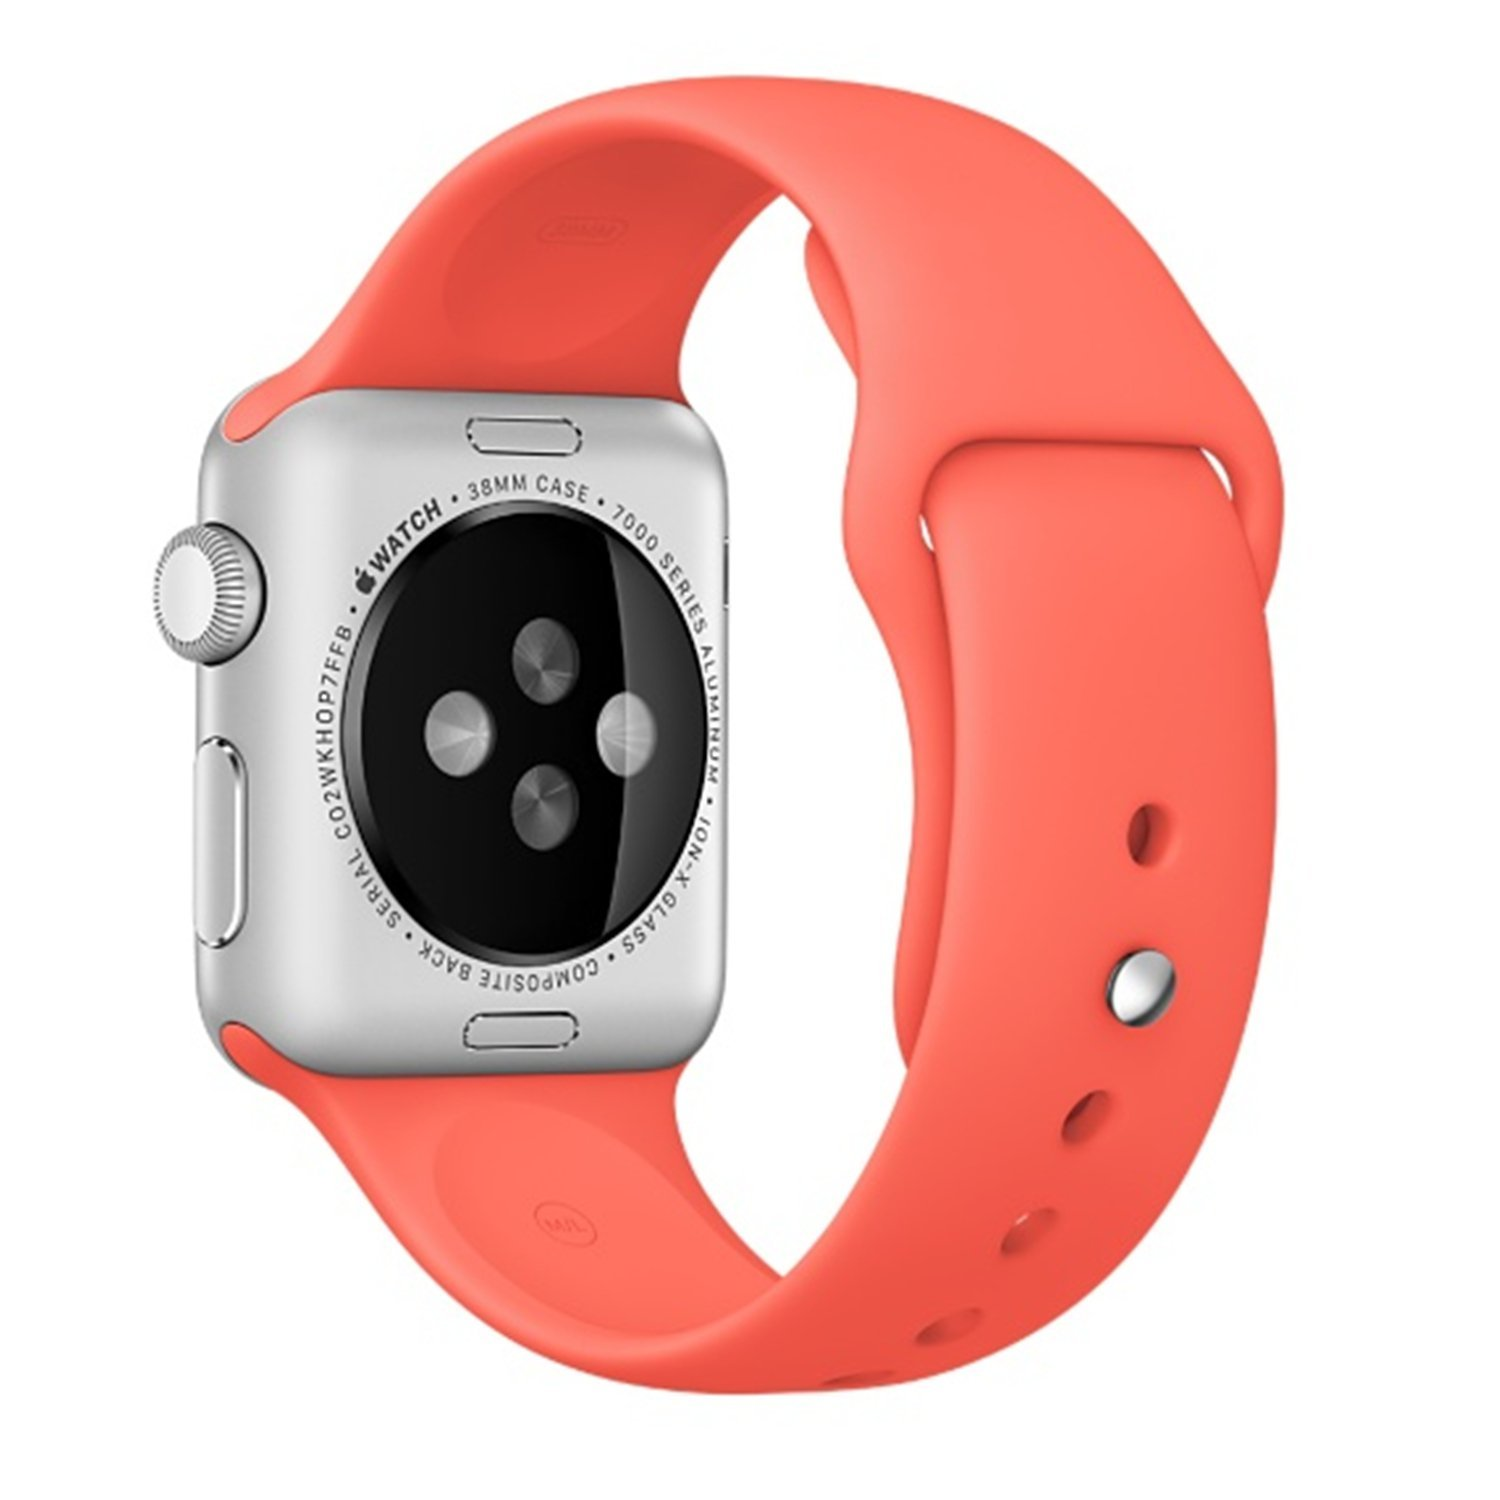 Apple Watch Band - Vitech Soft Silicone Sport Style Replacement iWatch Strap Band for Apple Wrist Smart Watch (Apricot, 42MM S/M)